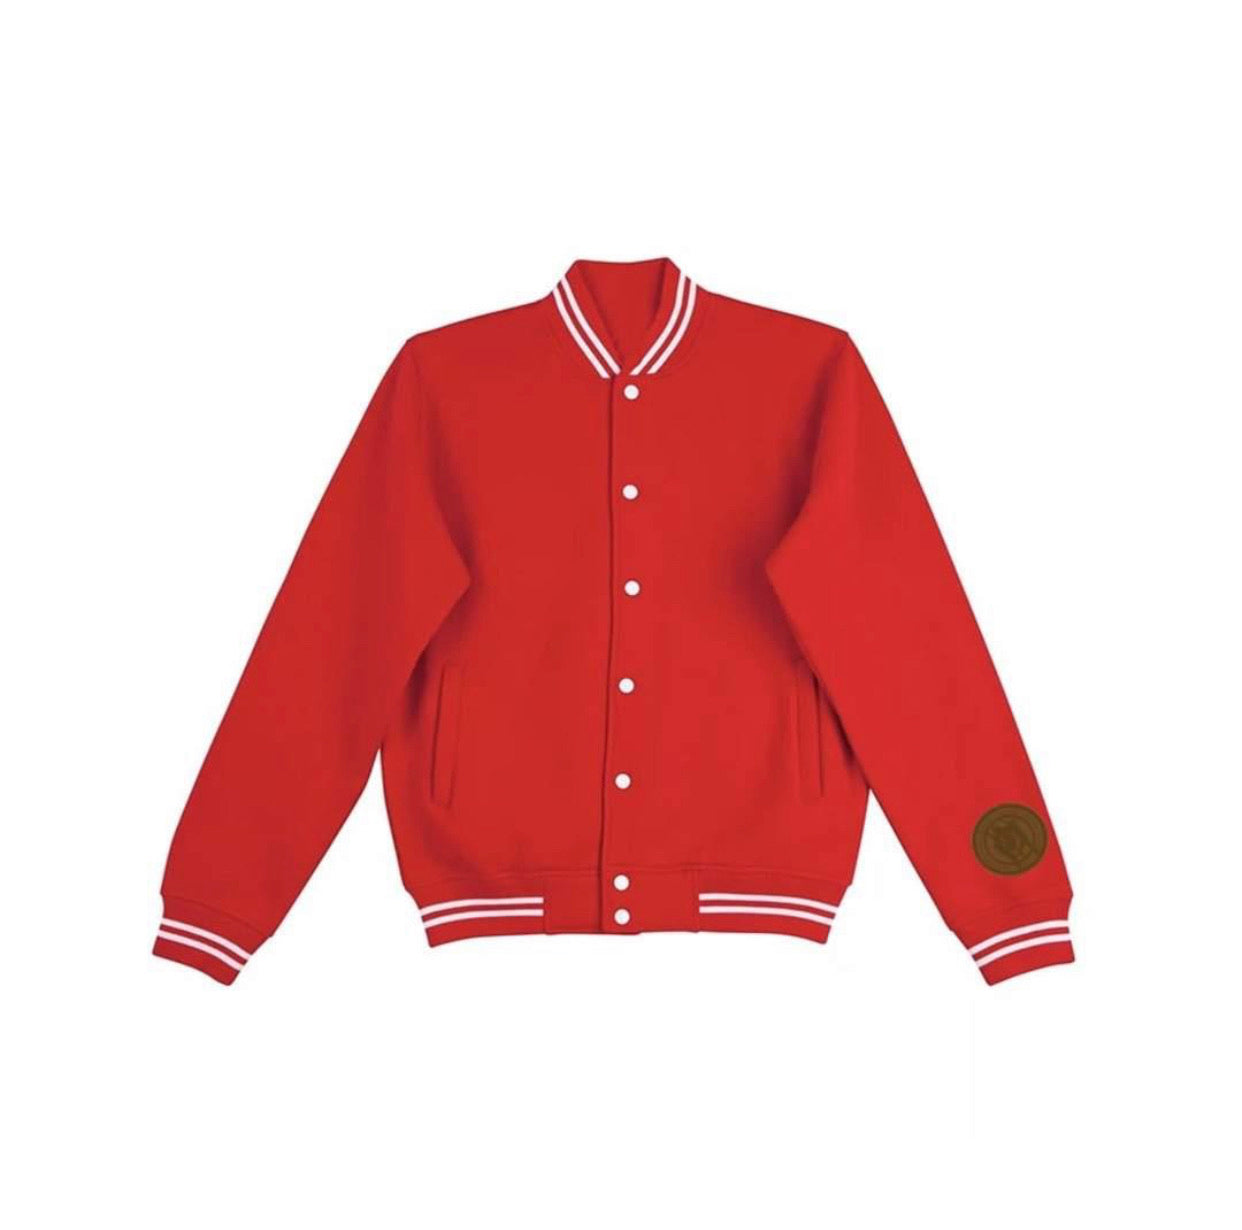 The Signature Varsity Jacket - Bestseller!